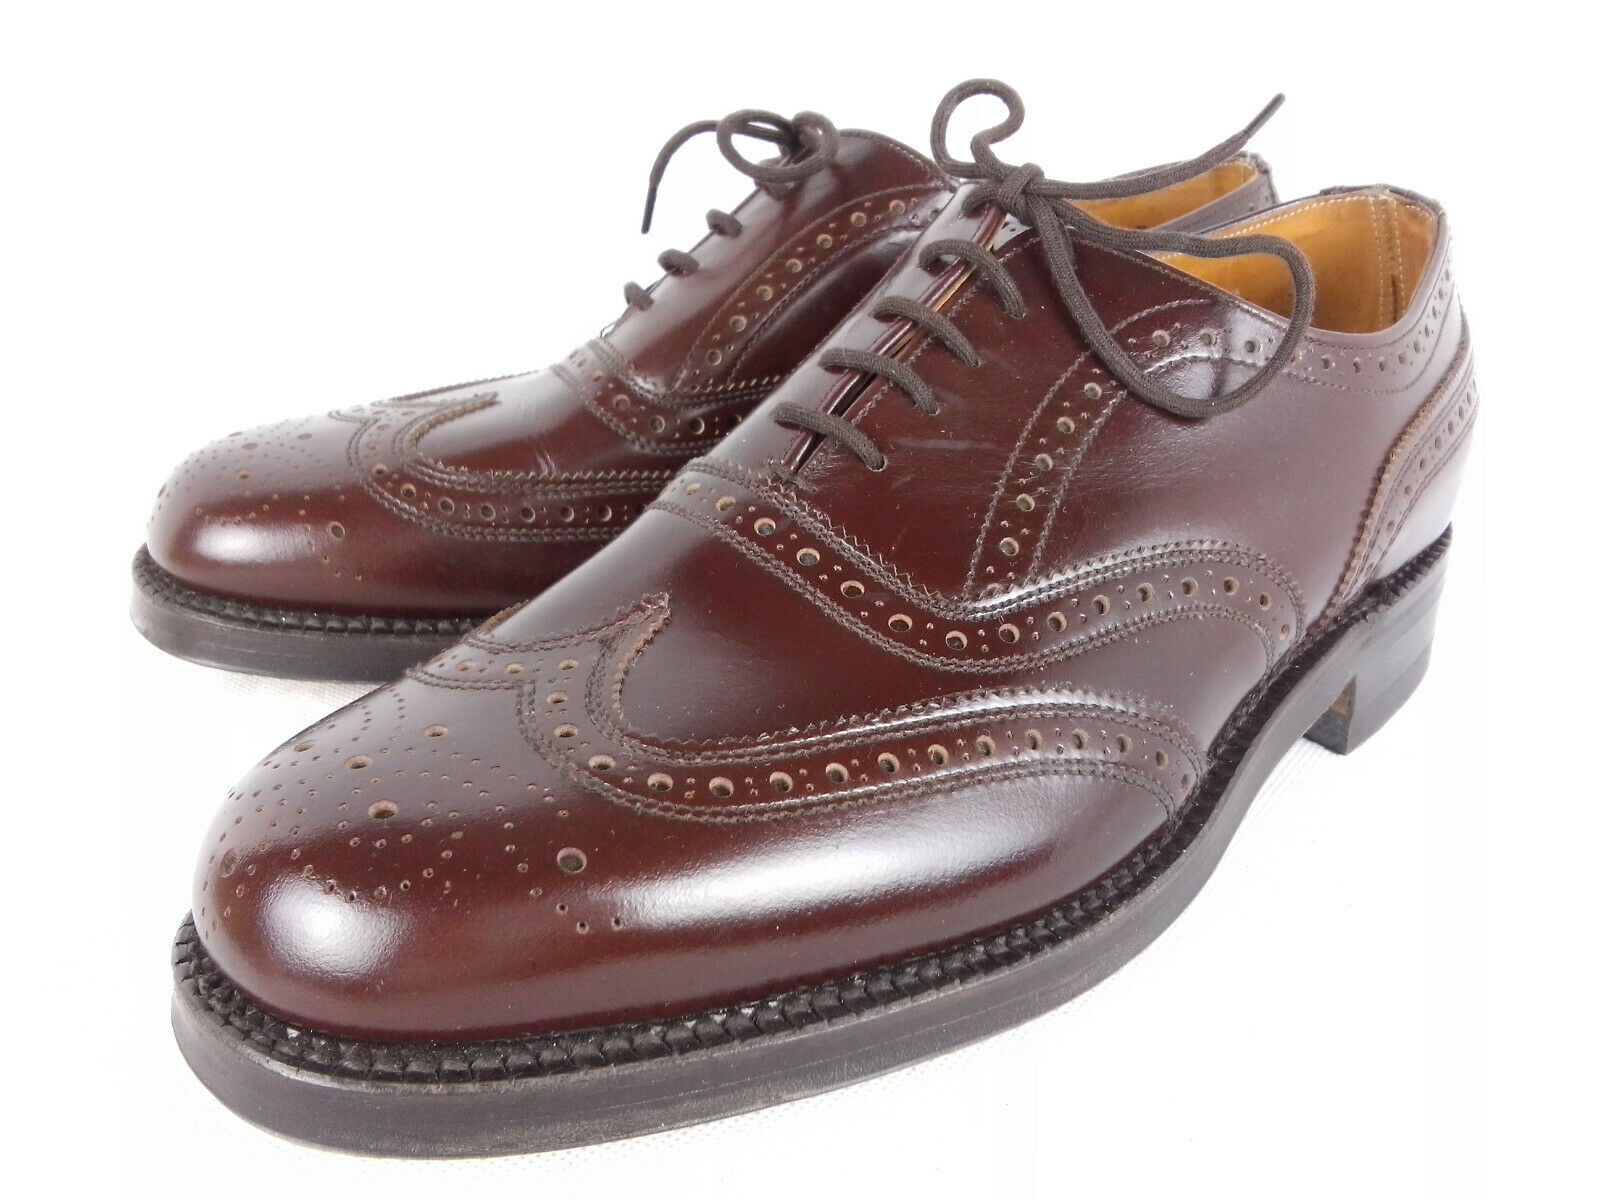 Cheaney para Dunn & Co BNWOB Marrón Pulido de piel de becerro Brogue Oxford Uk 7 F nos